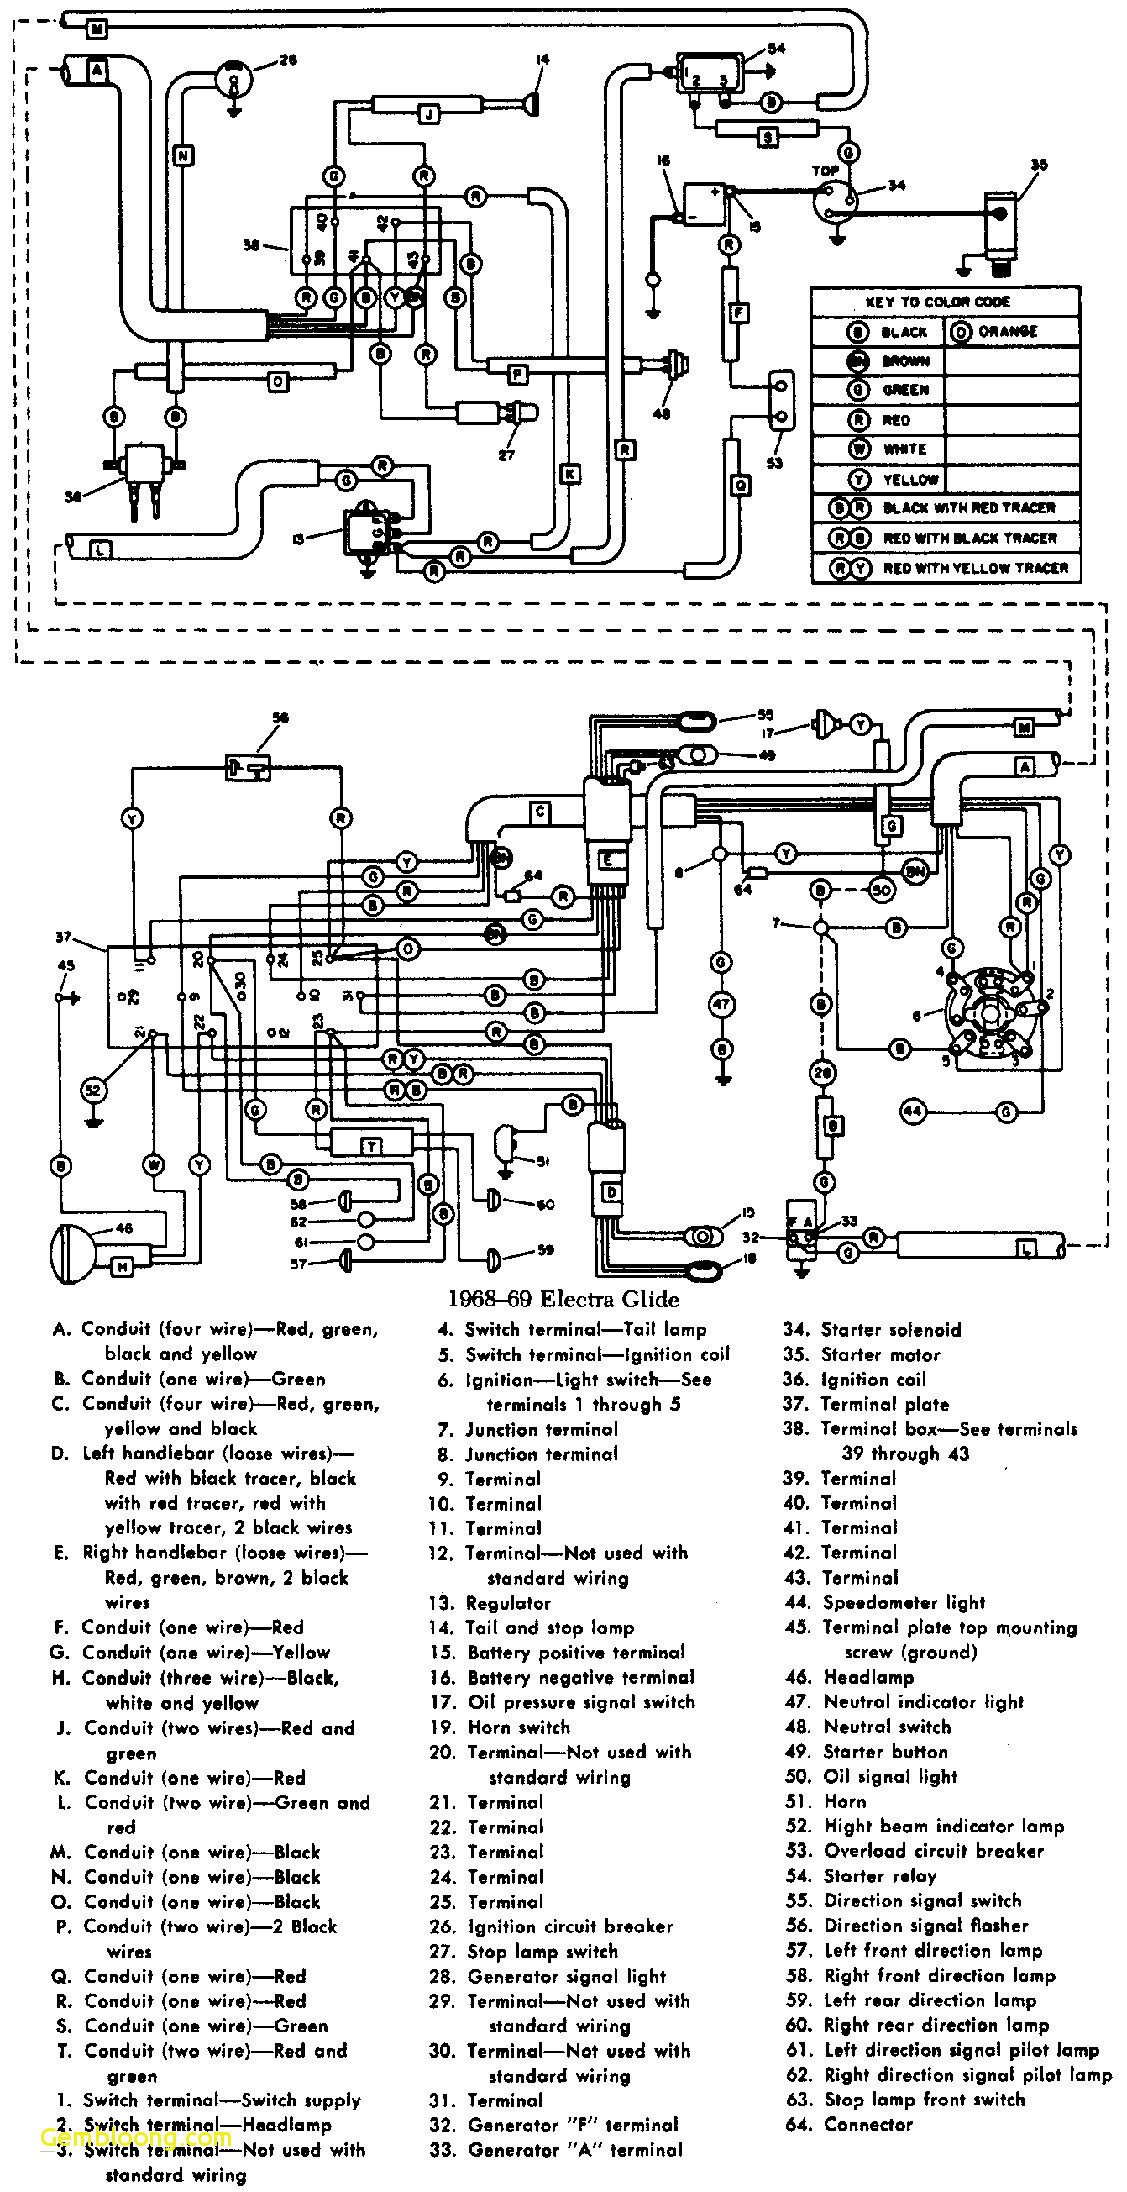 [DIAGRAM] Ford Radio Wiring Diagrams Free FULL Version HD